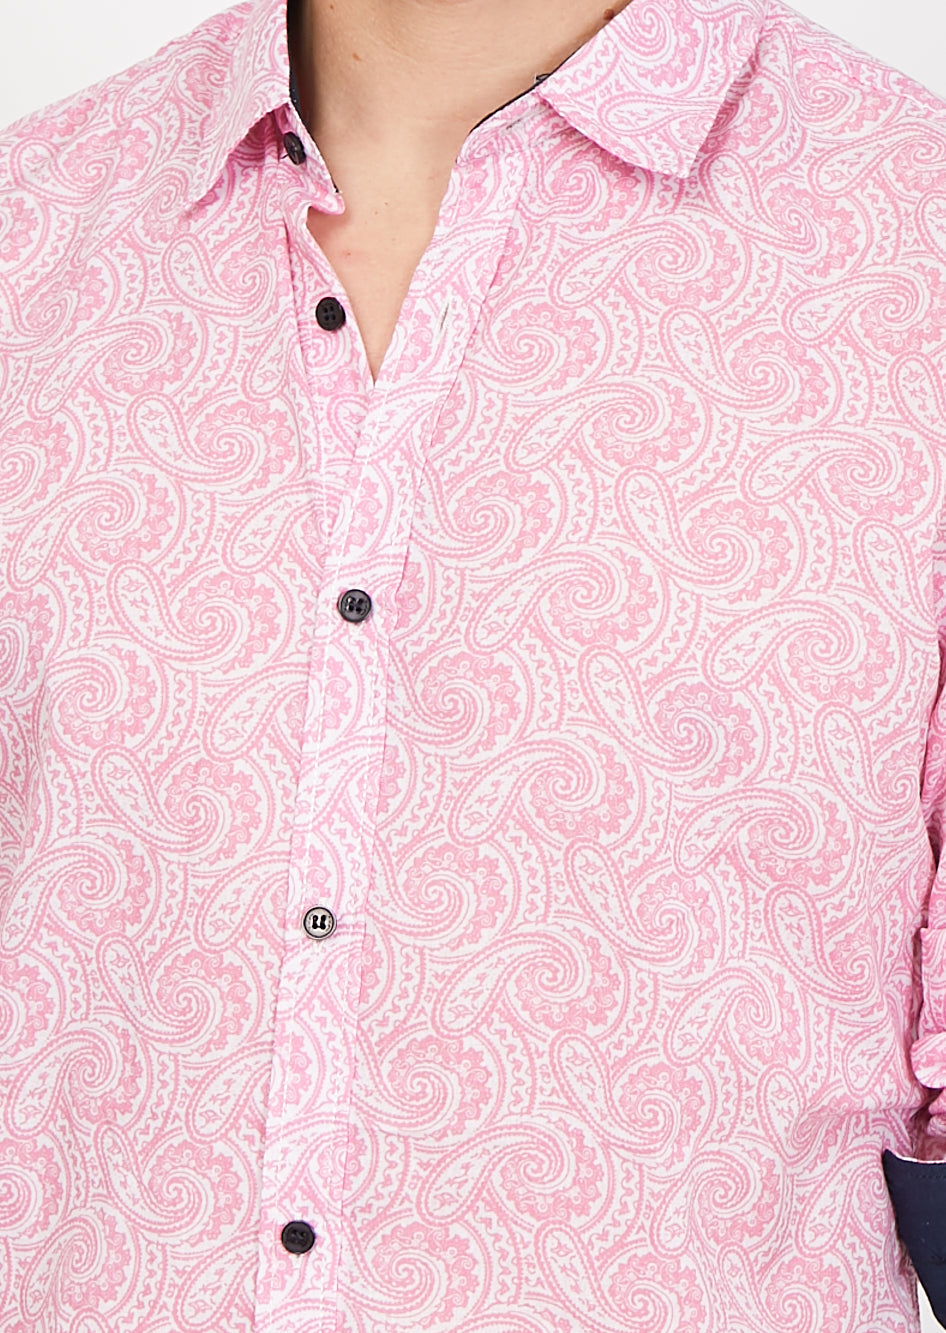 Diego Pink Paisley Organic Button Up